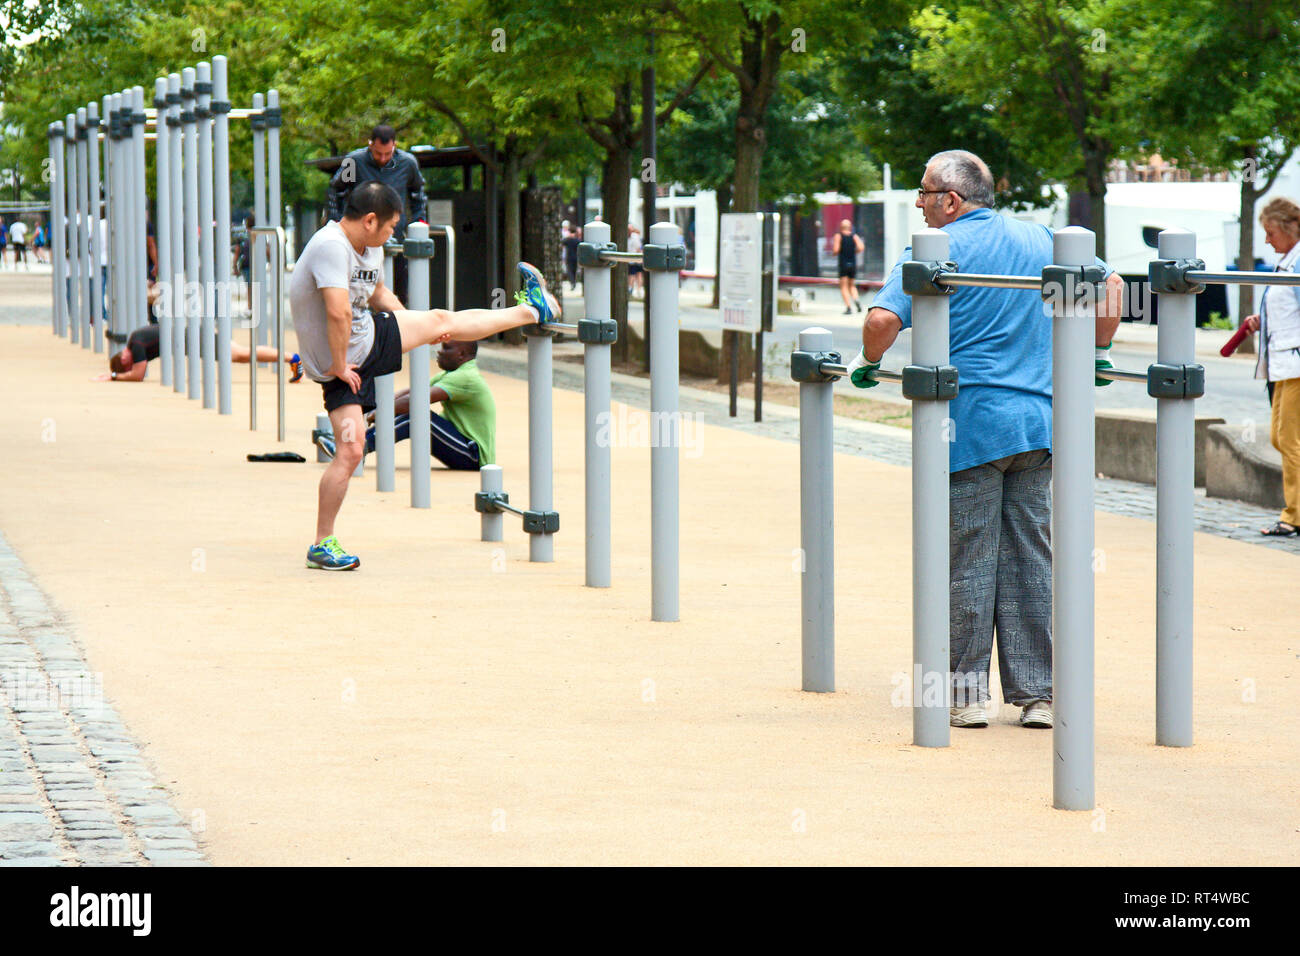 outdoor exercise center; men working out; health; fitness; strength; physical effort, Lyon; France; summer; horizontal - Stock Image